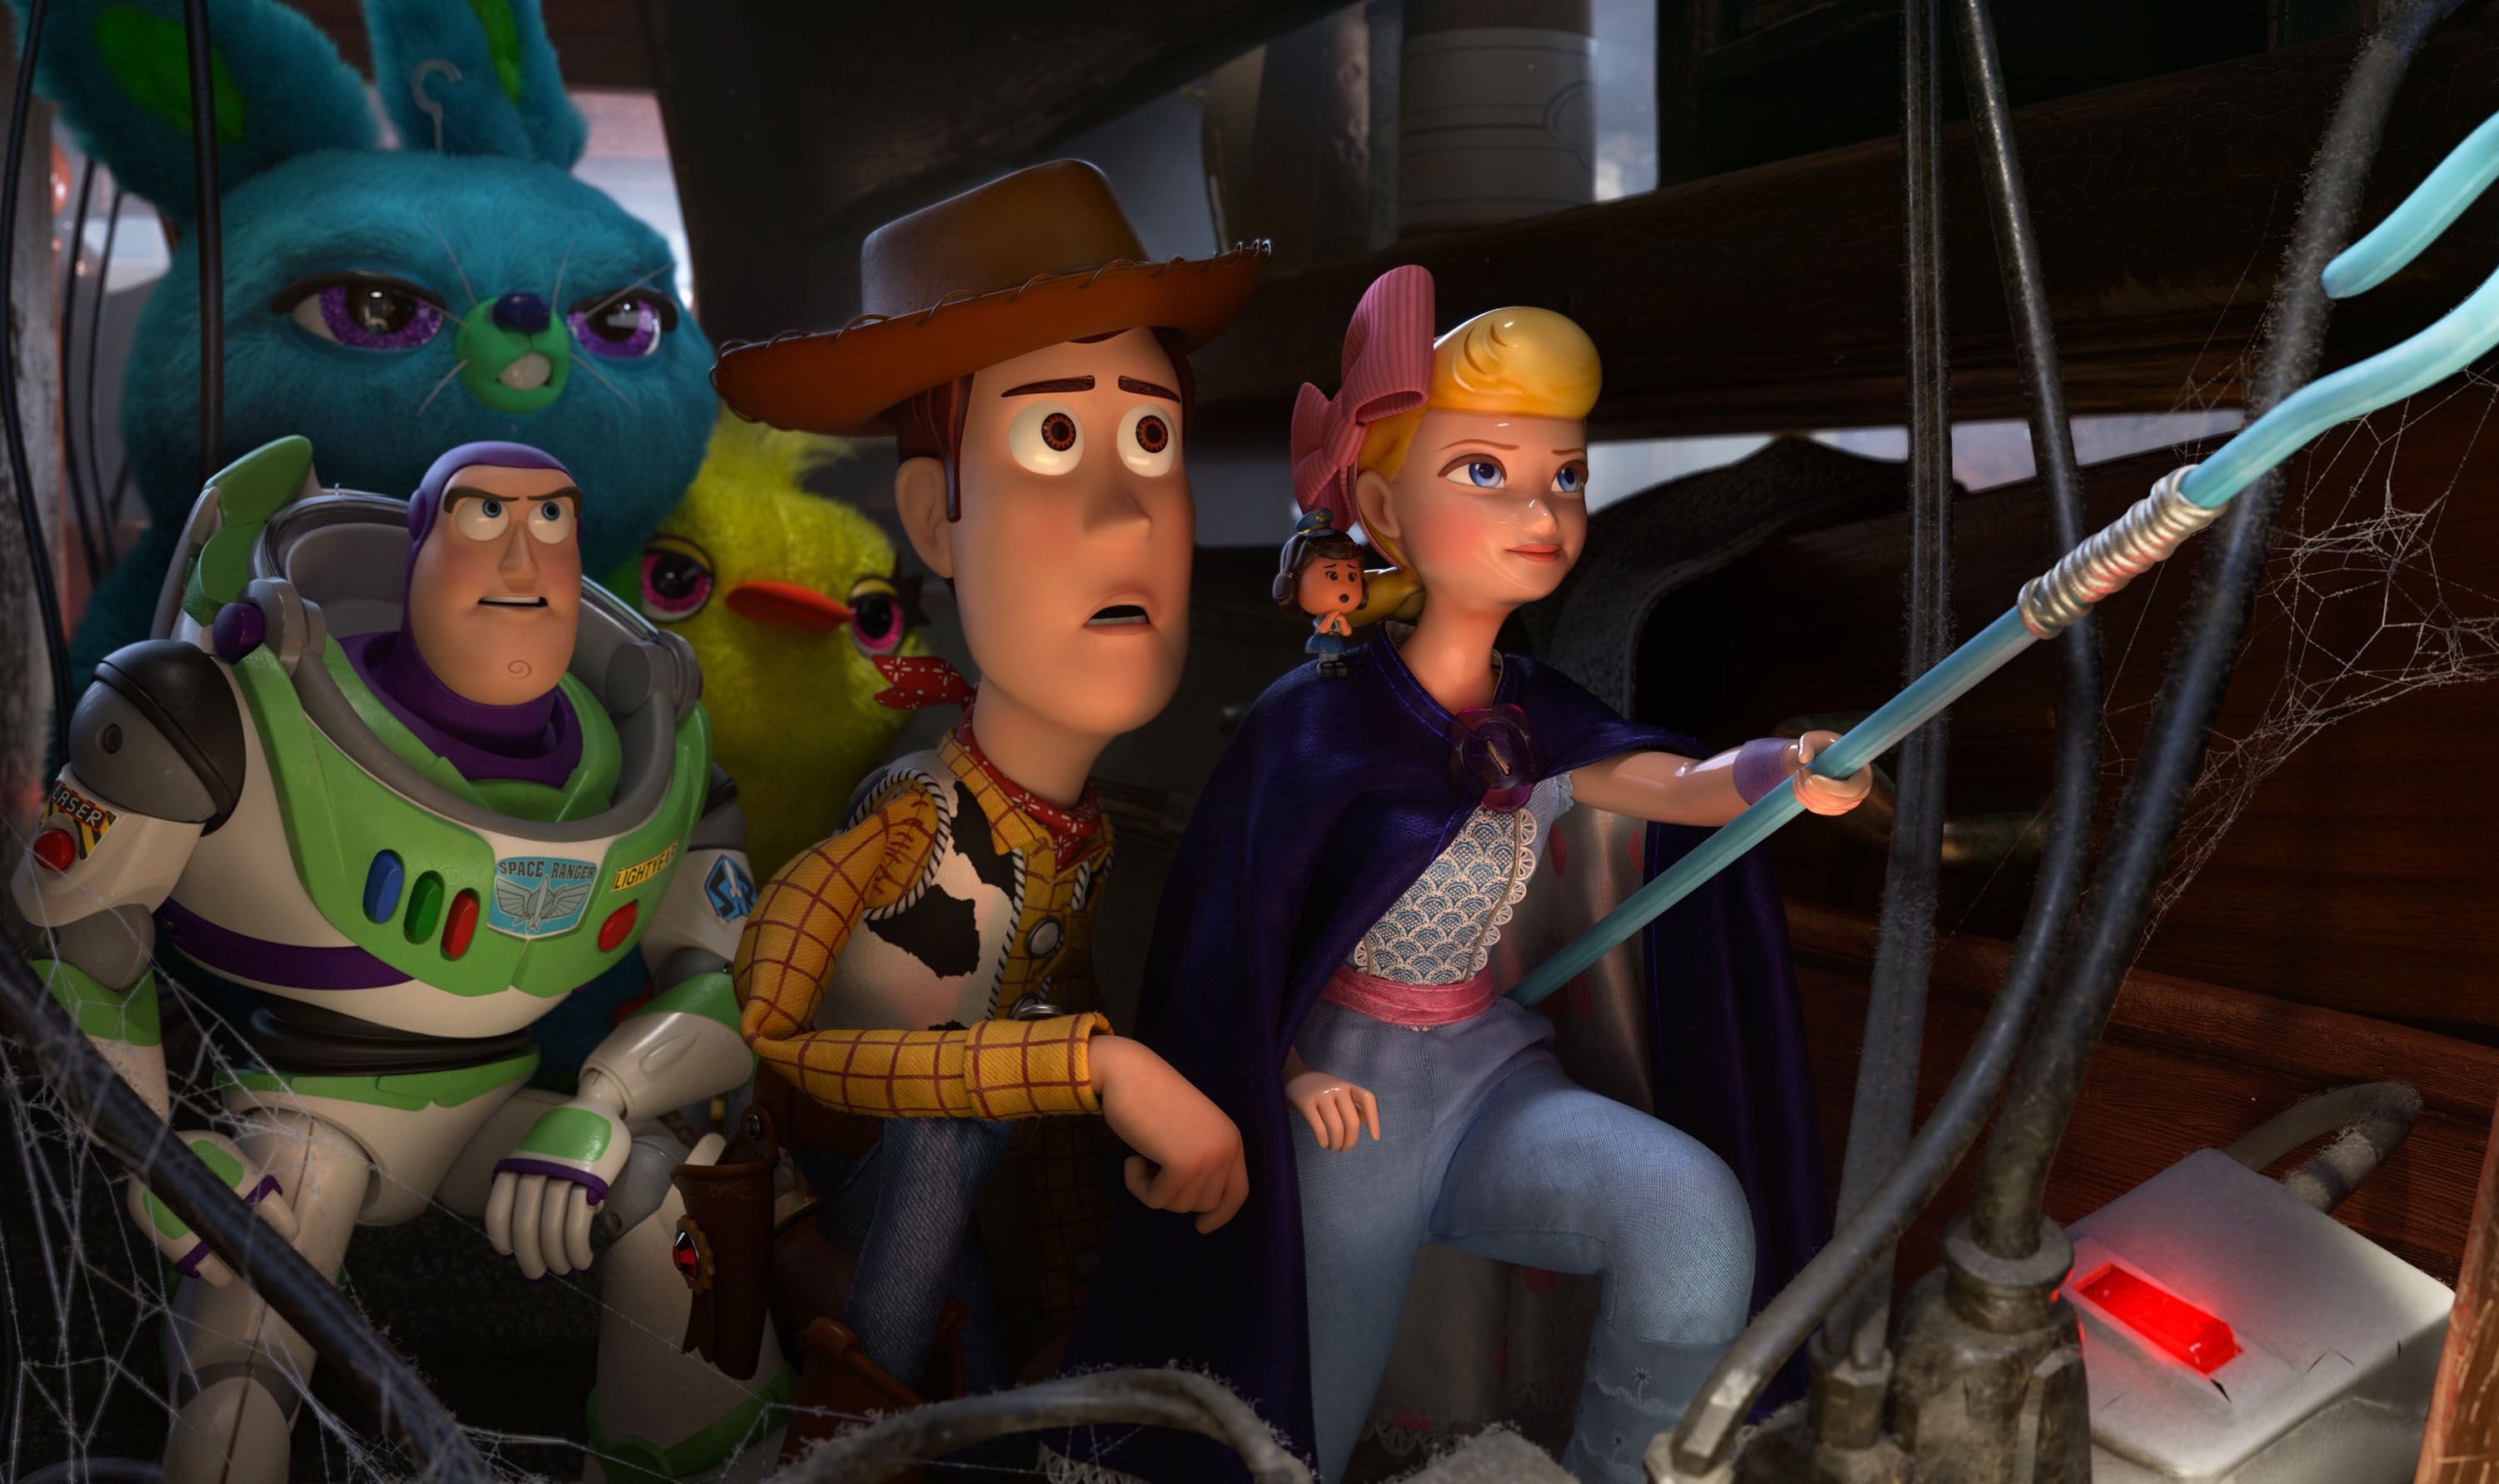 Toy Story Release Date